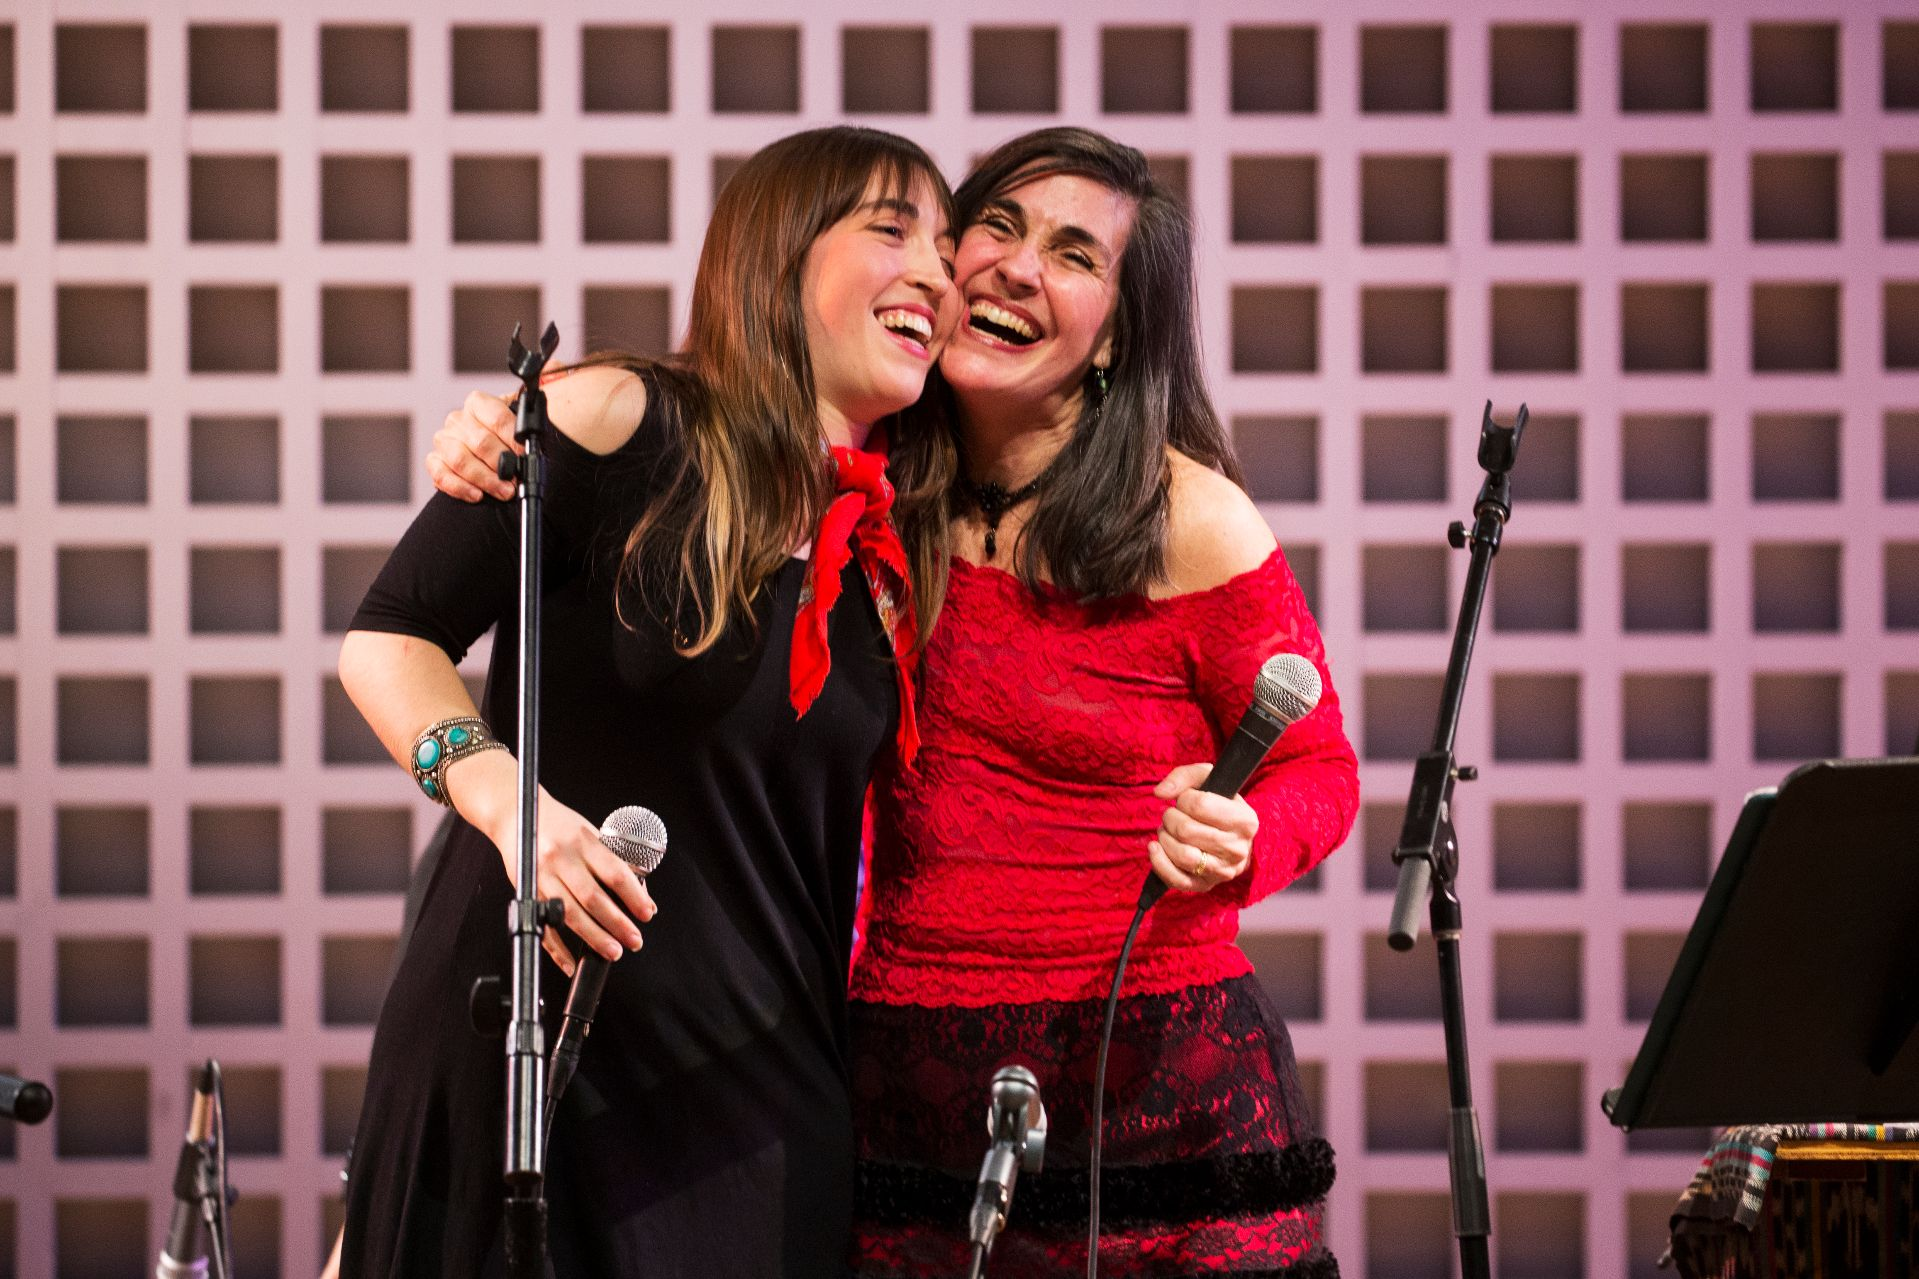 Alisa Amador '18 of Cambridge, Mass., and her mother, Rosi Amador, embrace during a performance by the group Sol y Canto, whose principals are Alisa's parents, Rosi and Brian. Alisa joined them for the Olin Concert Series event. (Theophil Syslo/Bates College)